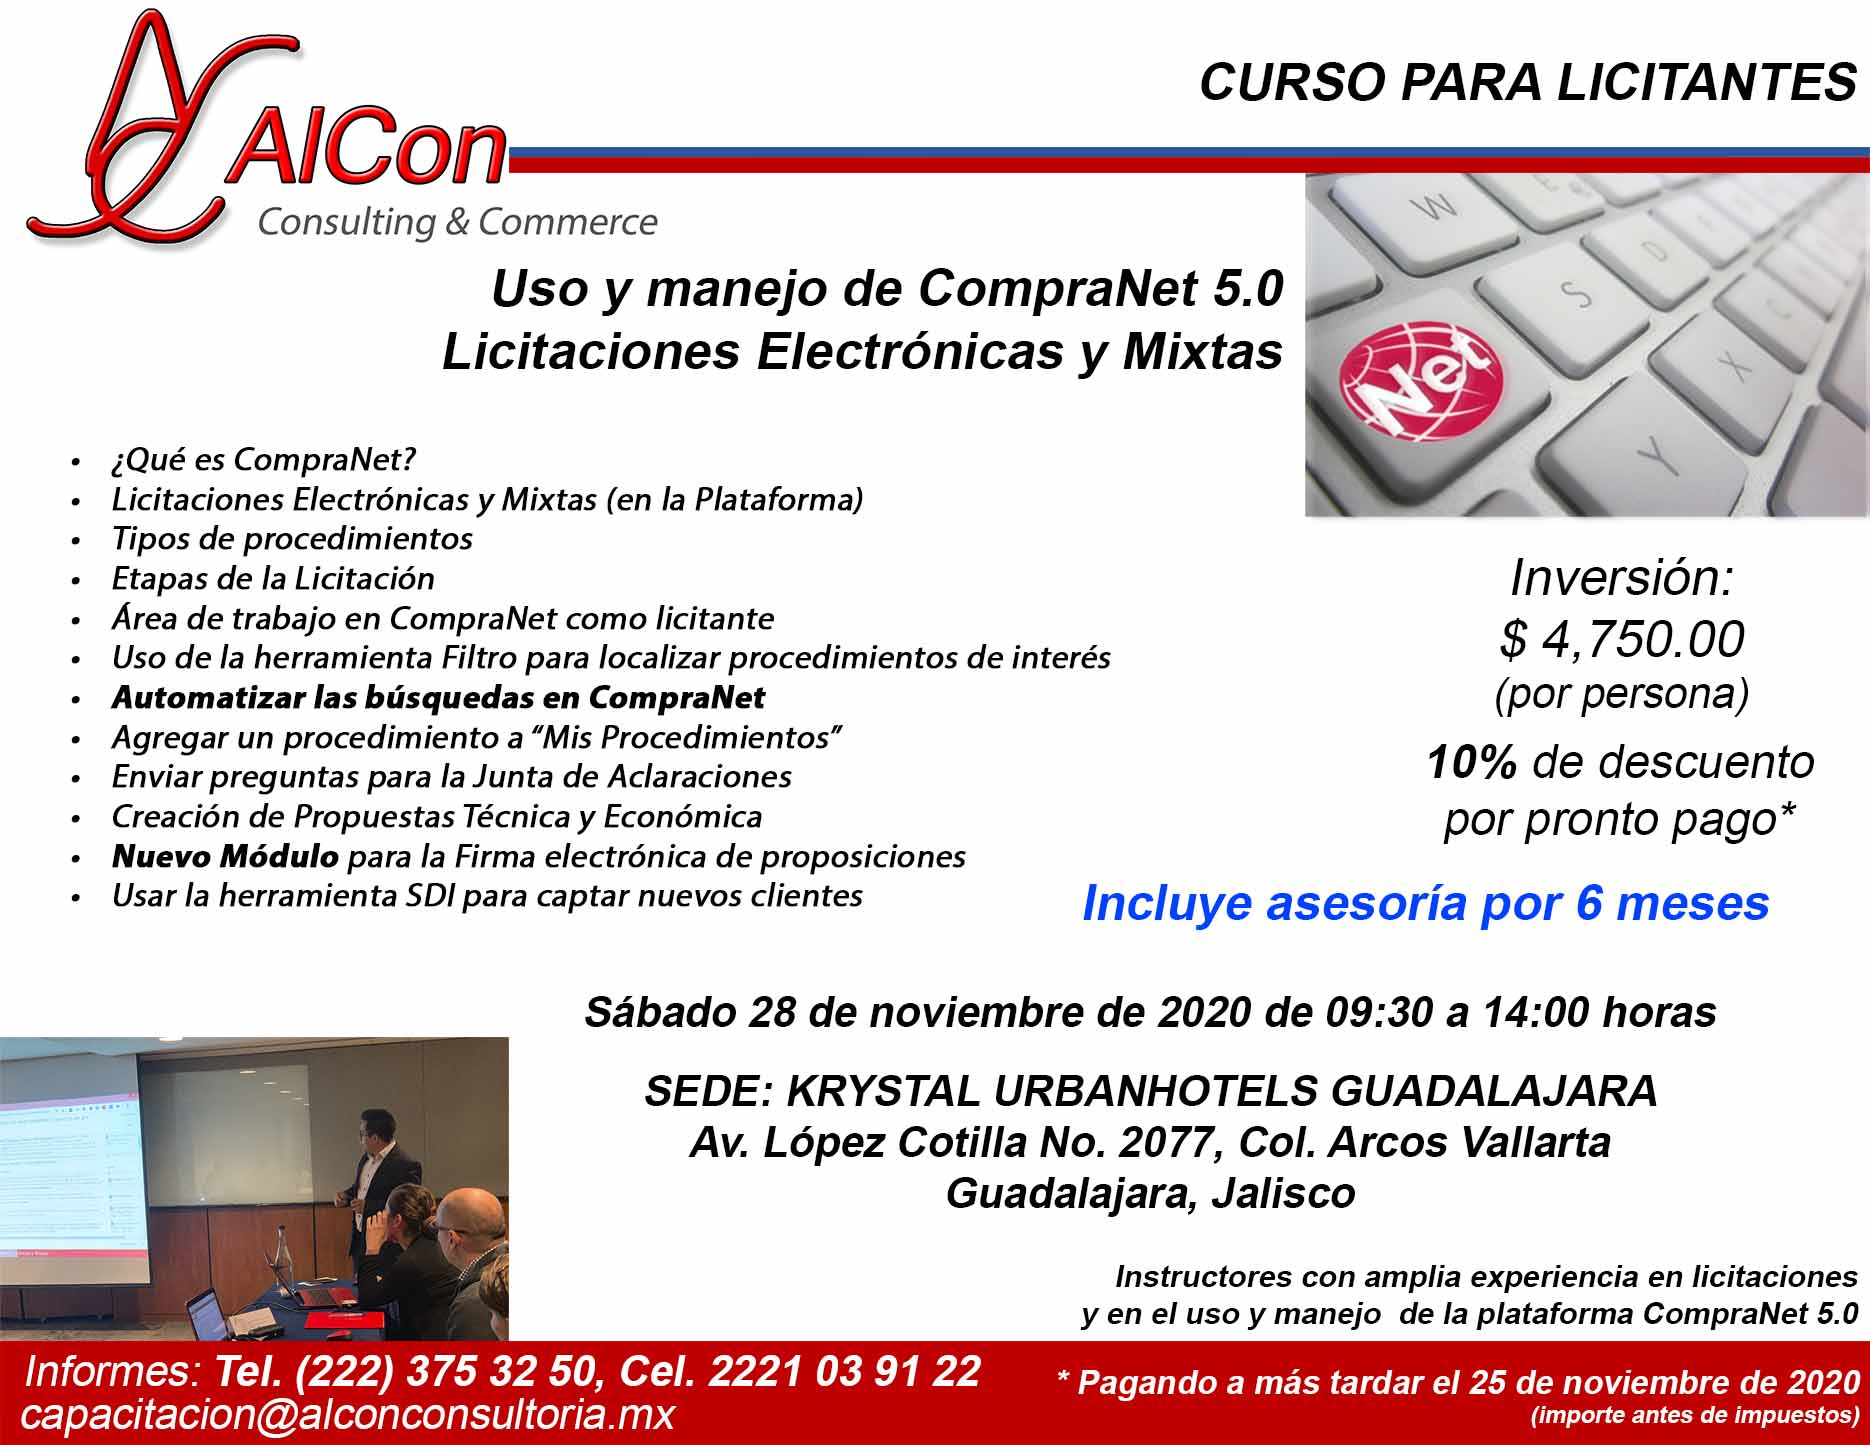 Curso de CompraNet 5.0, Guadalajara, Jalisco, AlCon Consultoría y Cómputo, AlCon Consulting And Commerce, Arcadio Alonso Sánchez